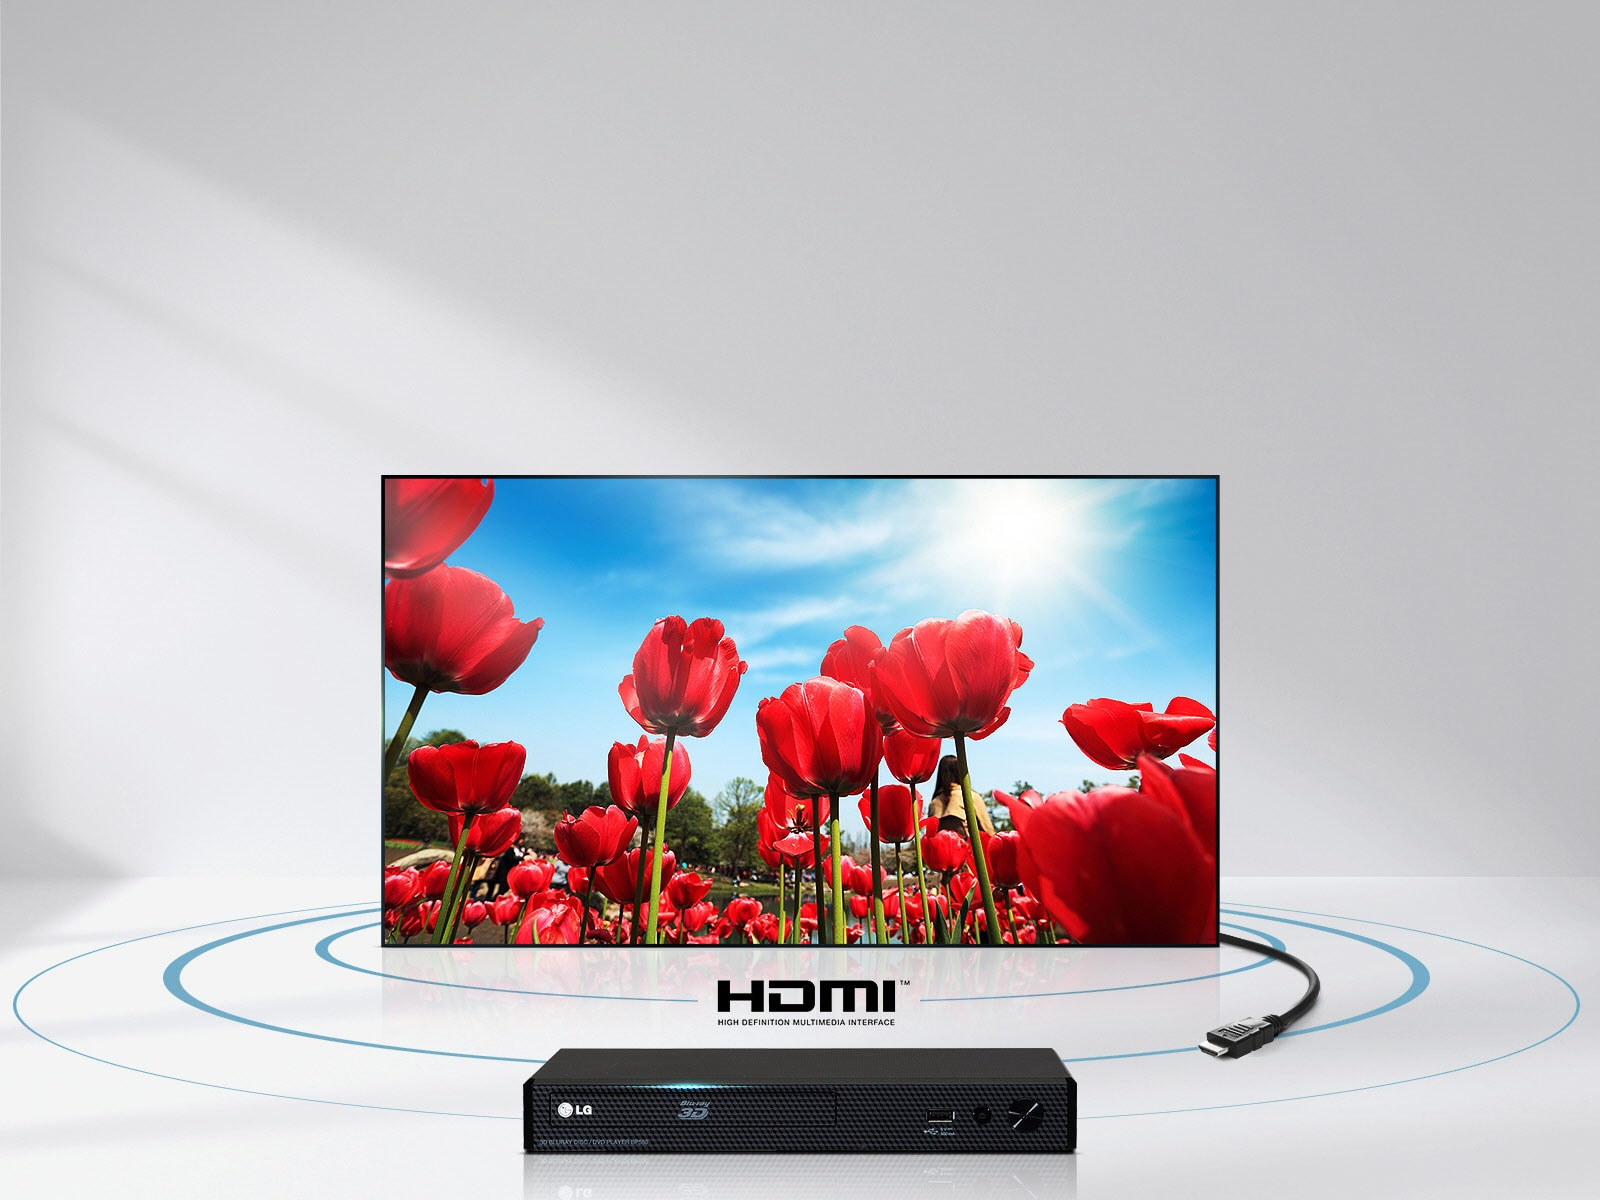 Enjoy top-quality audio and video over a single HDMI cable